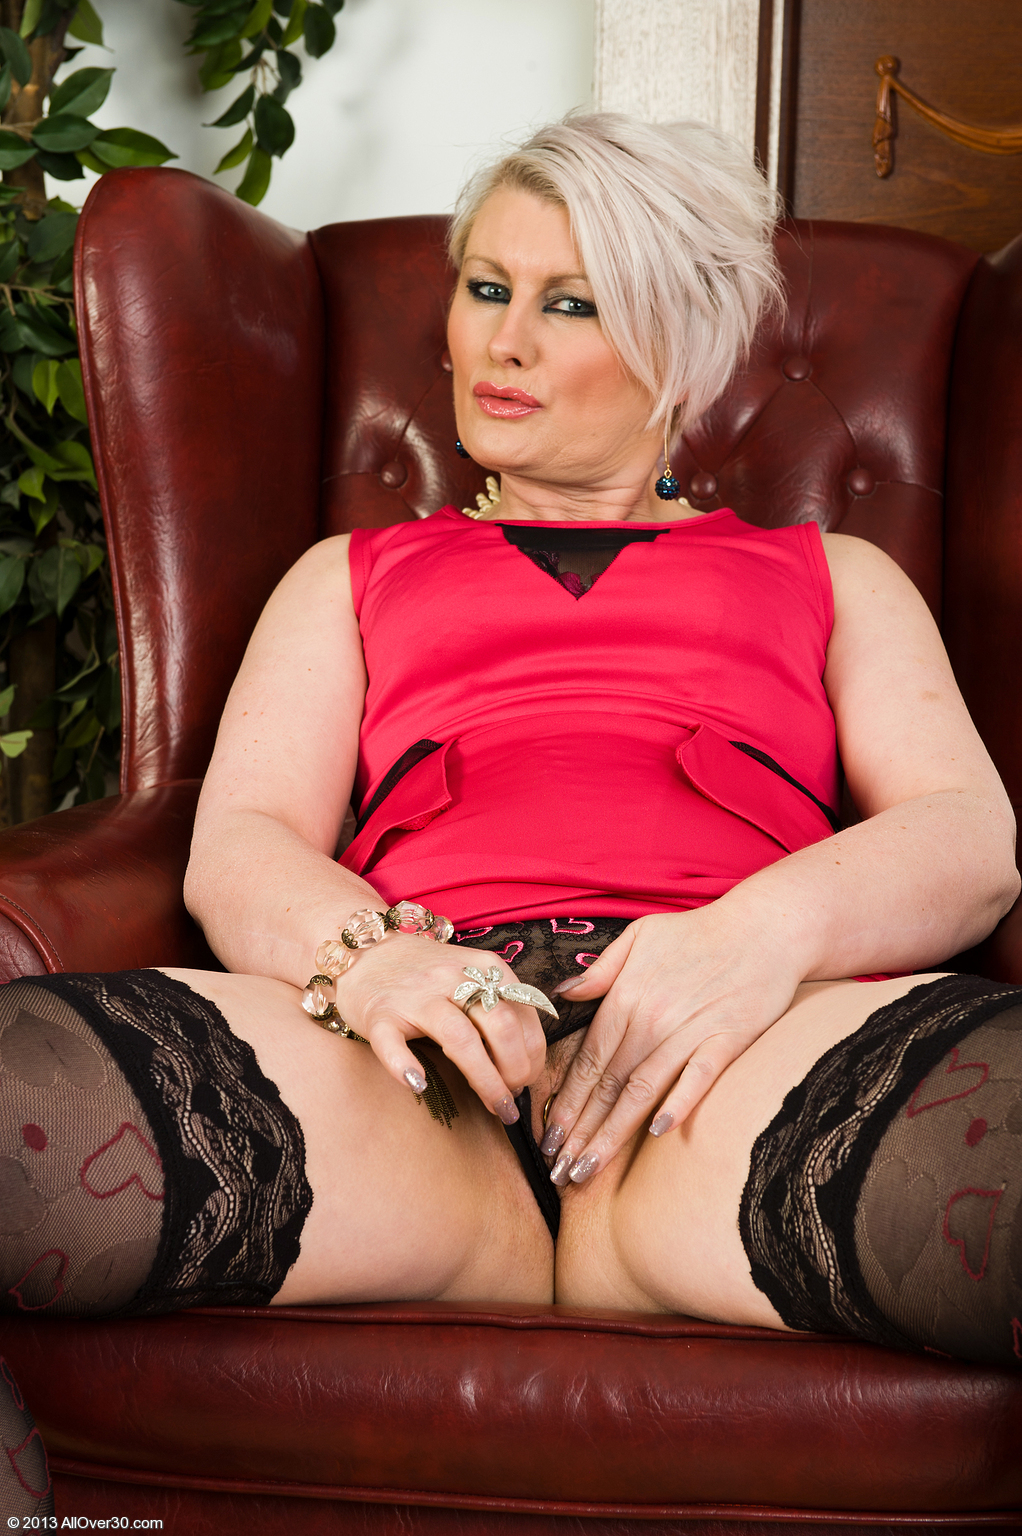 older babe sally taylor at allover30 free